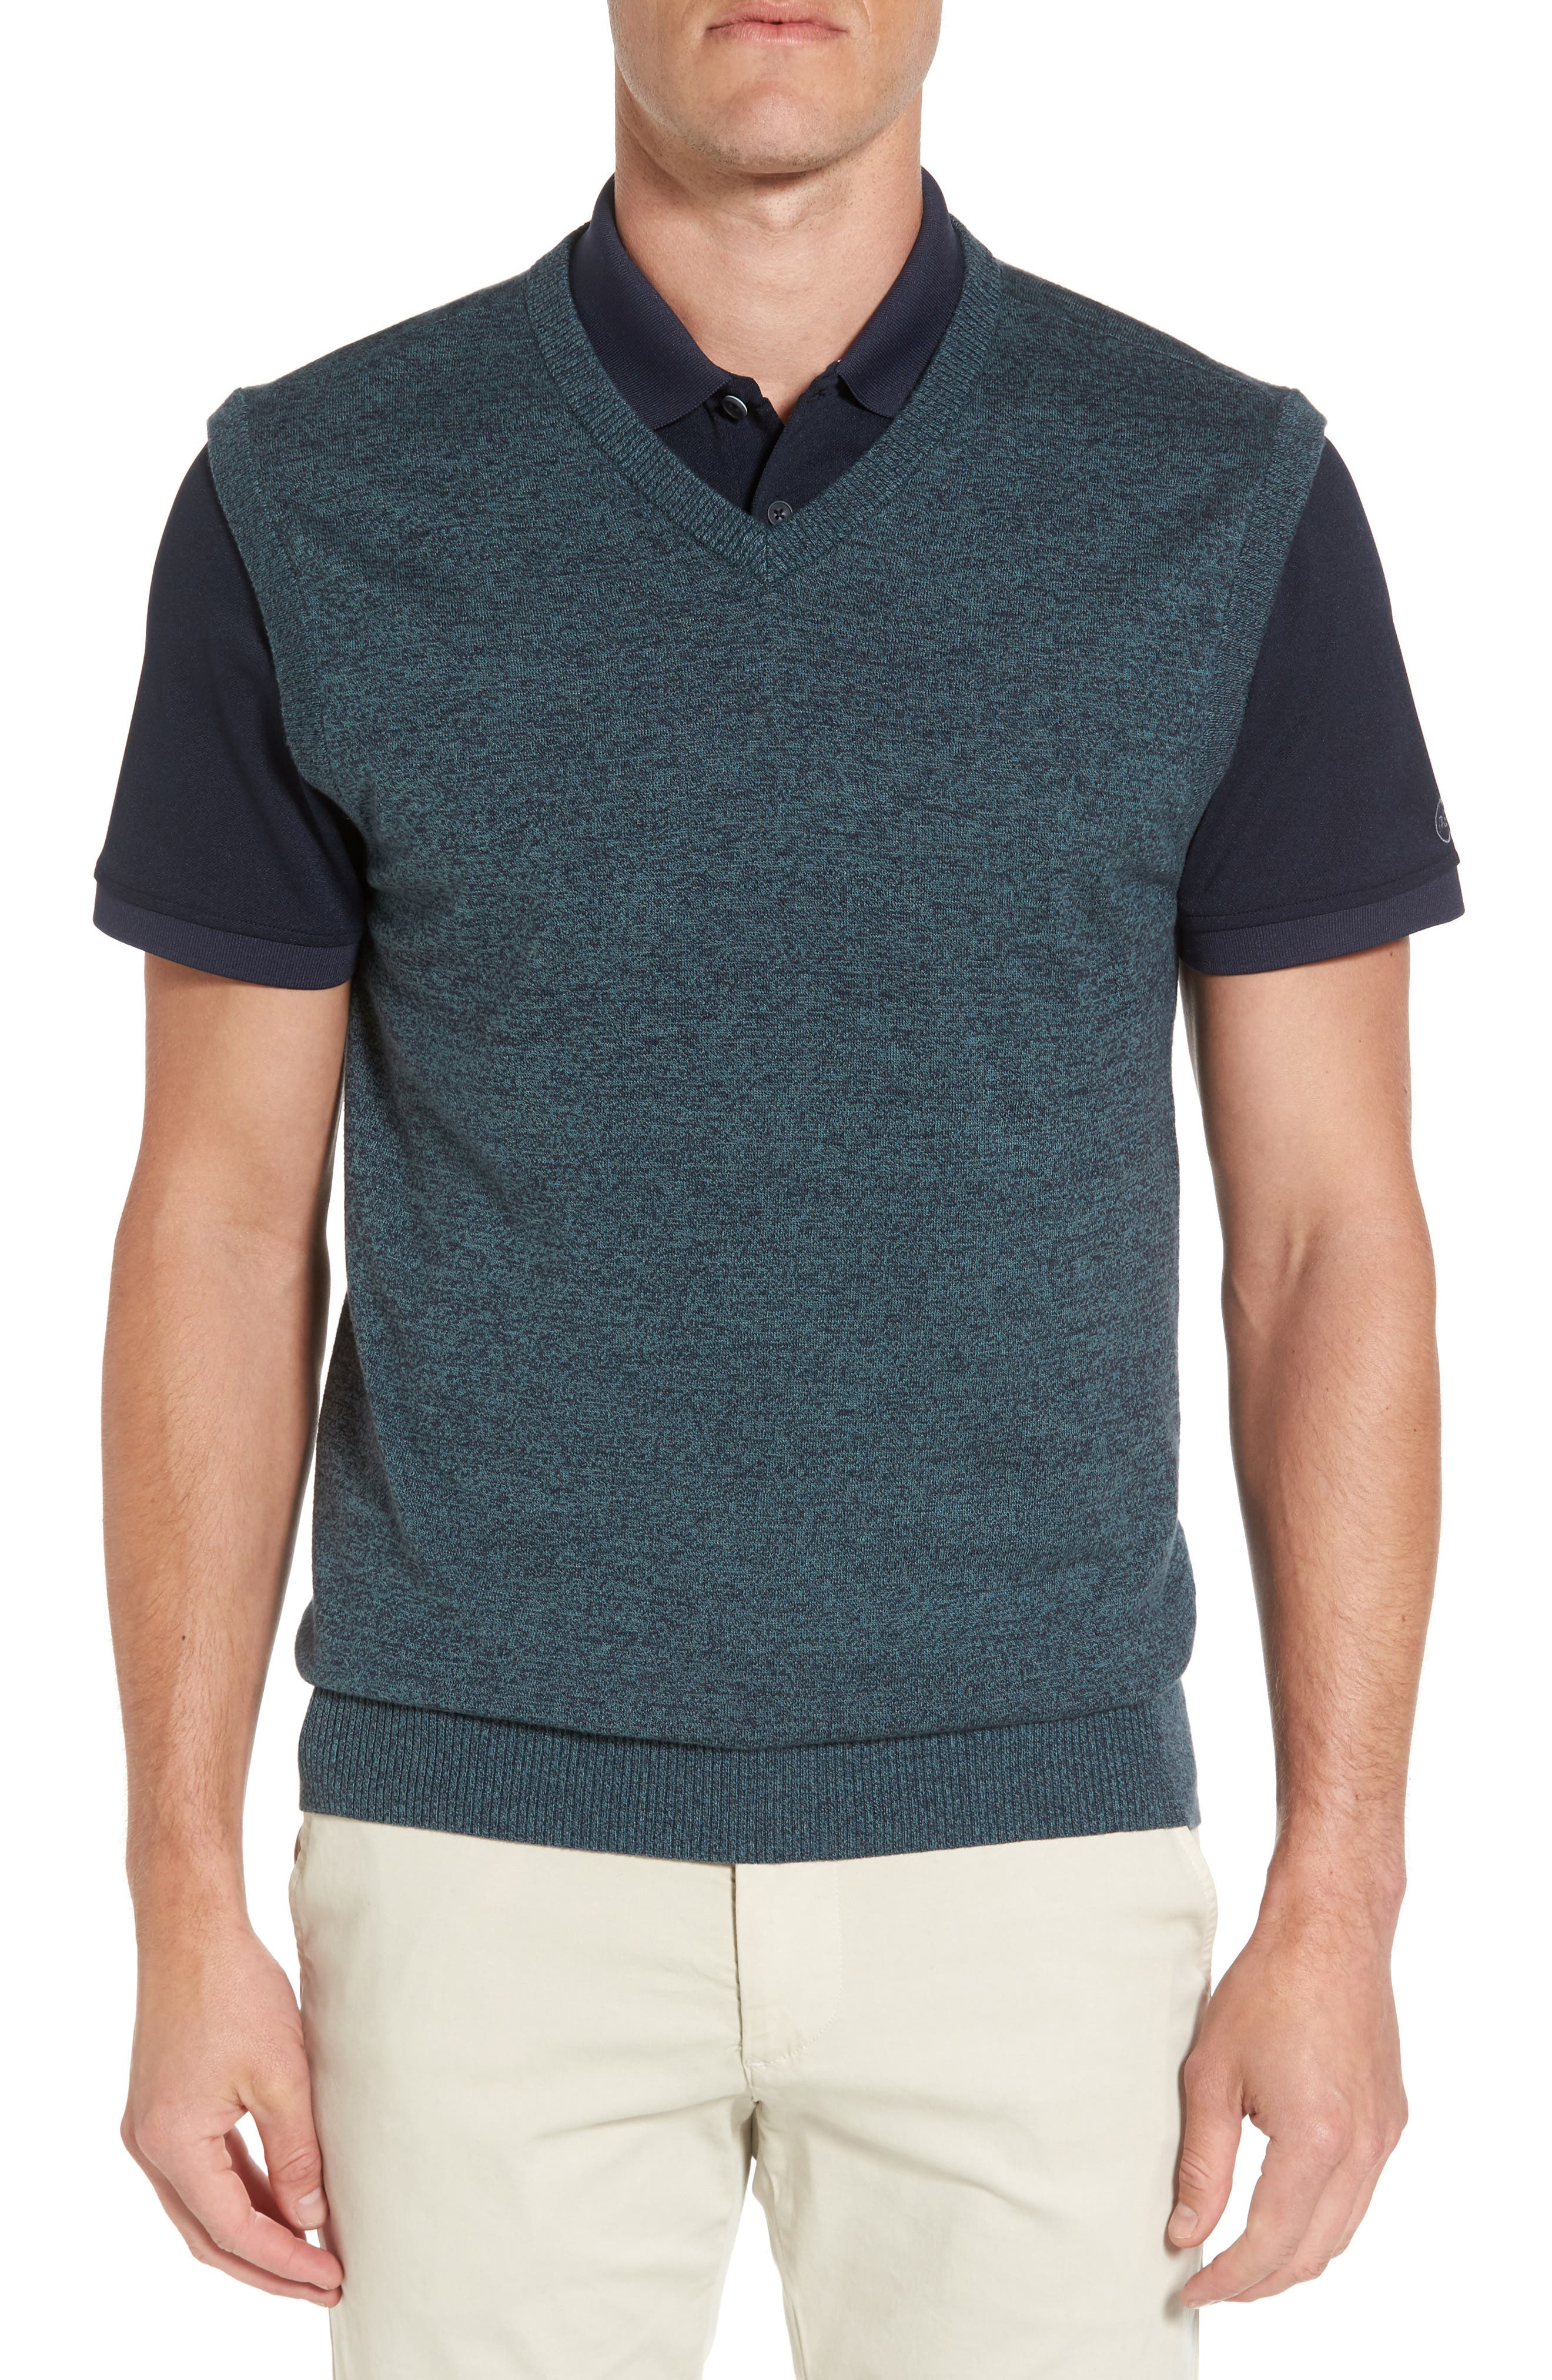 Valley V-Neck Sweater Vest,                             Main thumbnail 1, color,                             333